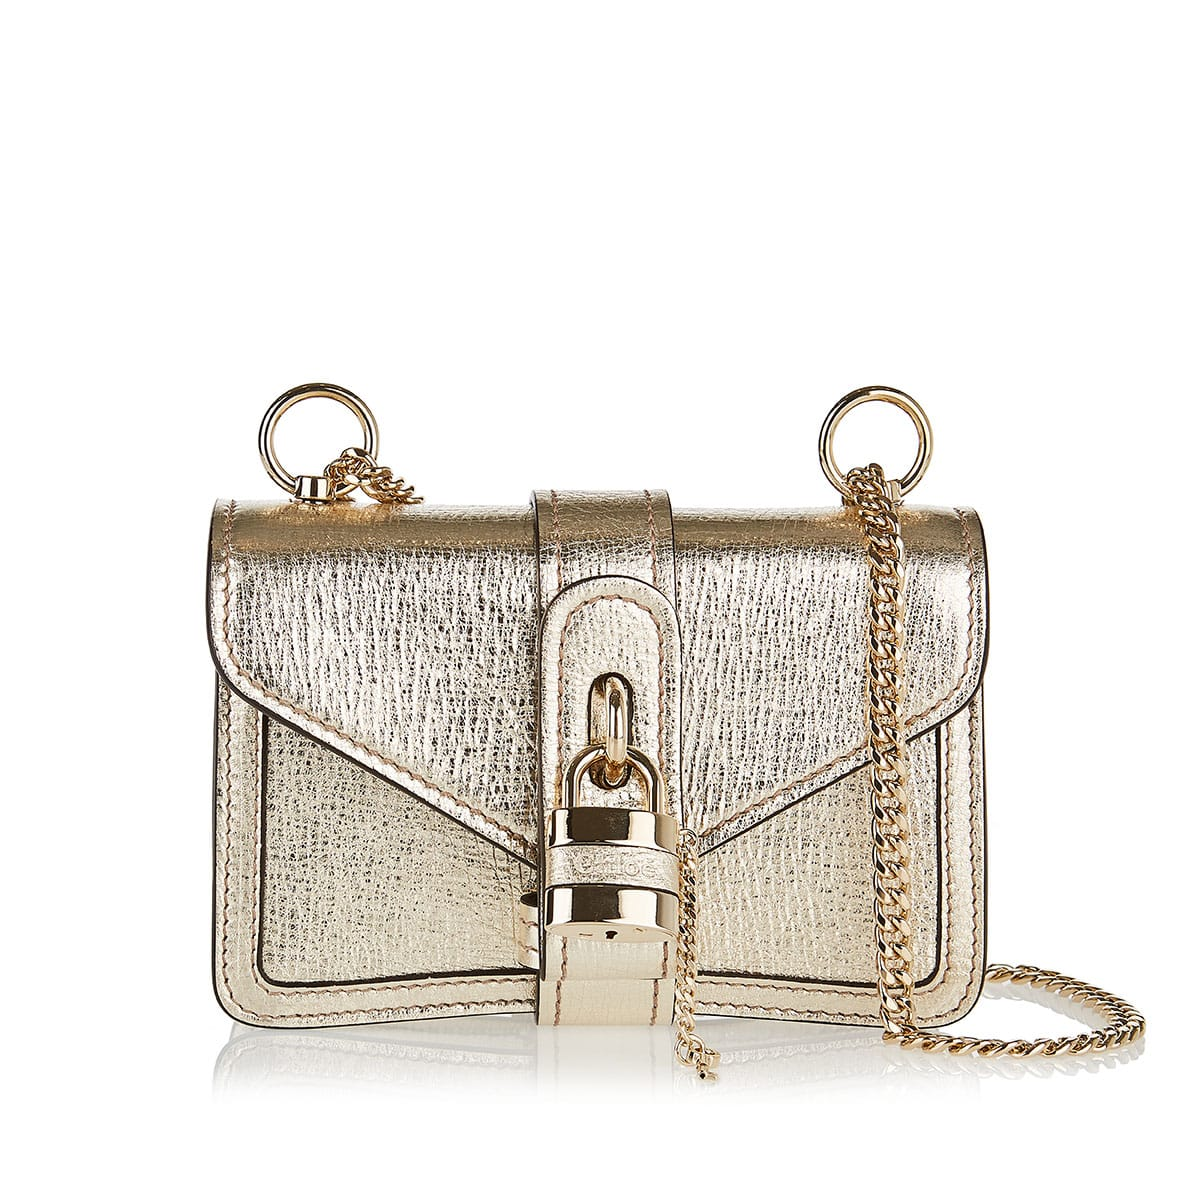 Aby Chain mini metallic-leather shoulder bag